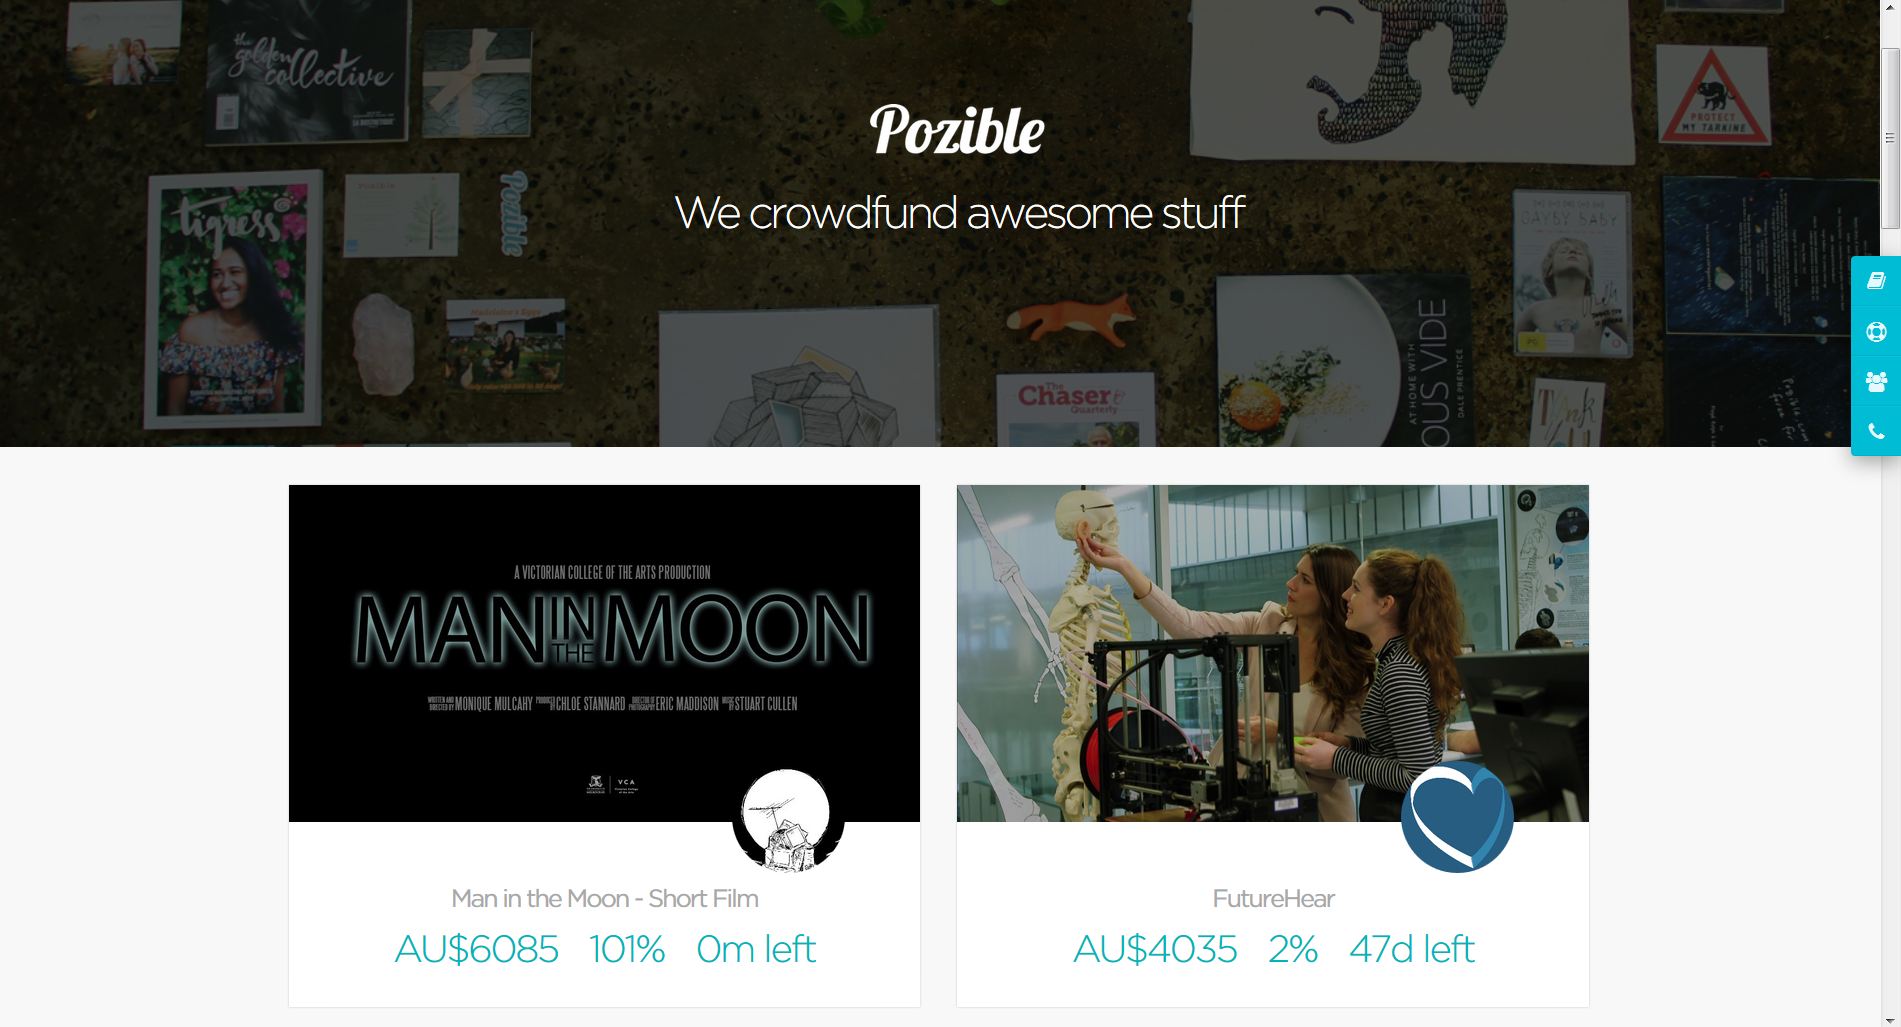 Pozible home page